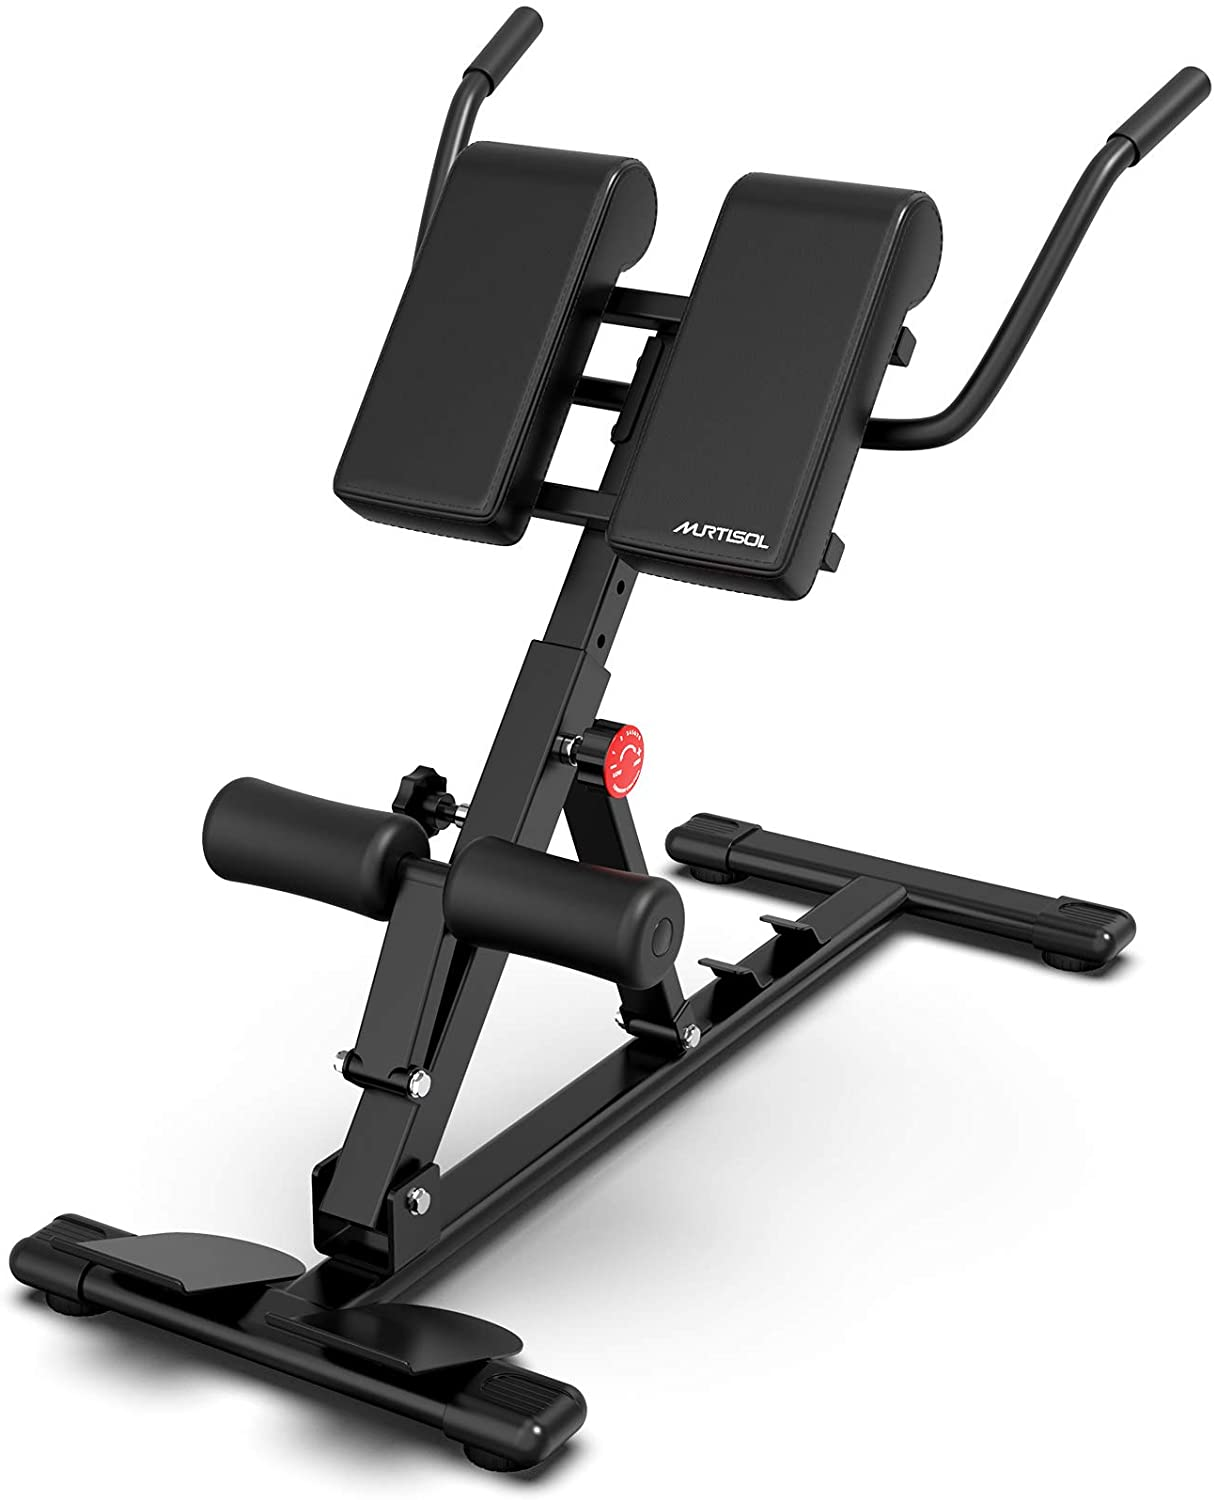 Hyper Extension Roman Chair Workout Abdominal Back Exercise Adjustable Bench USA